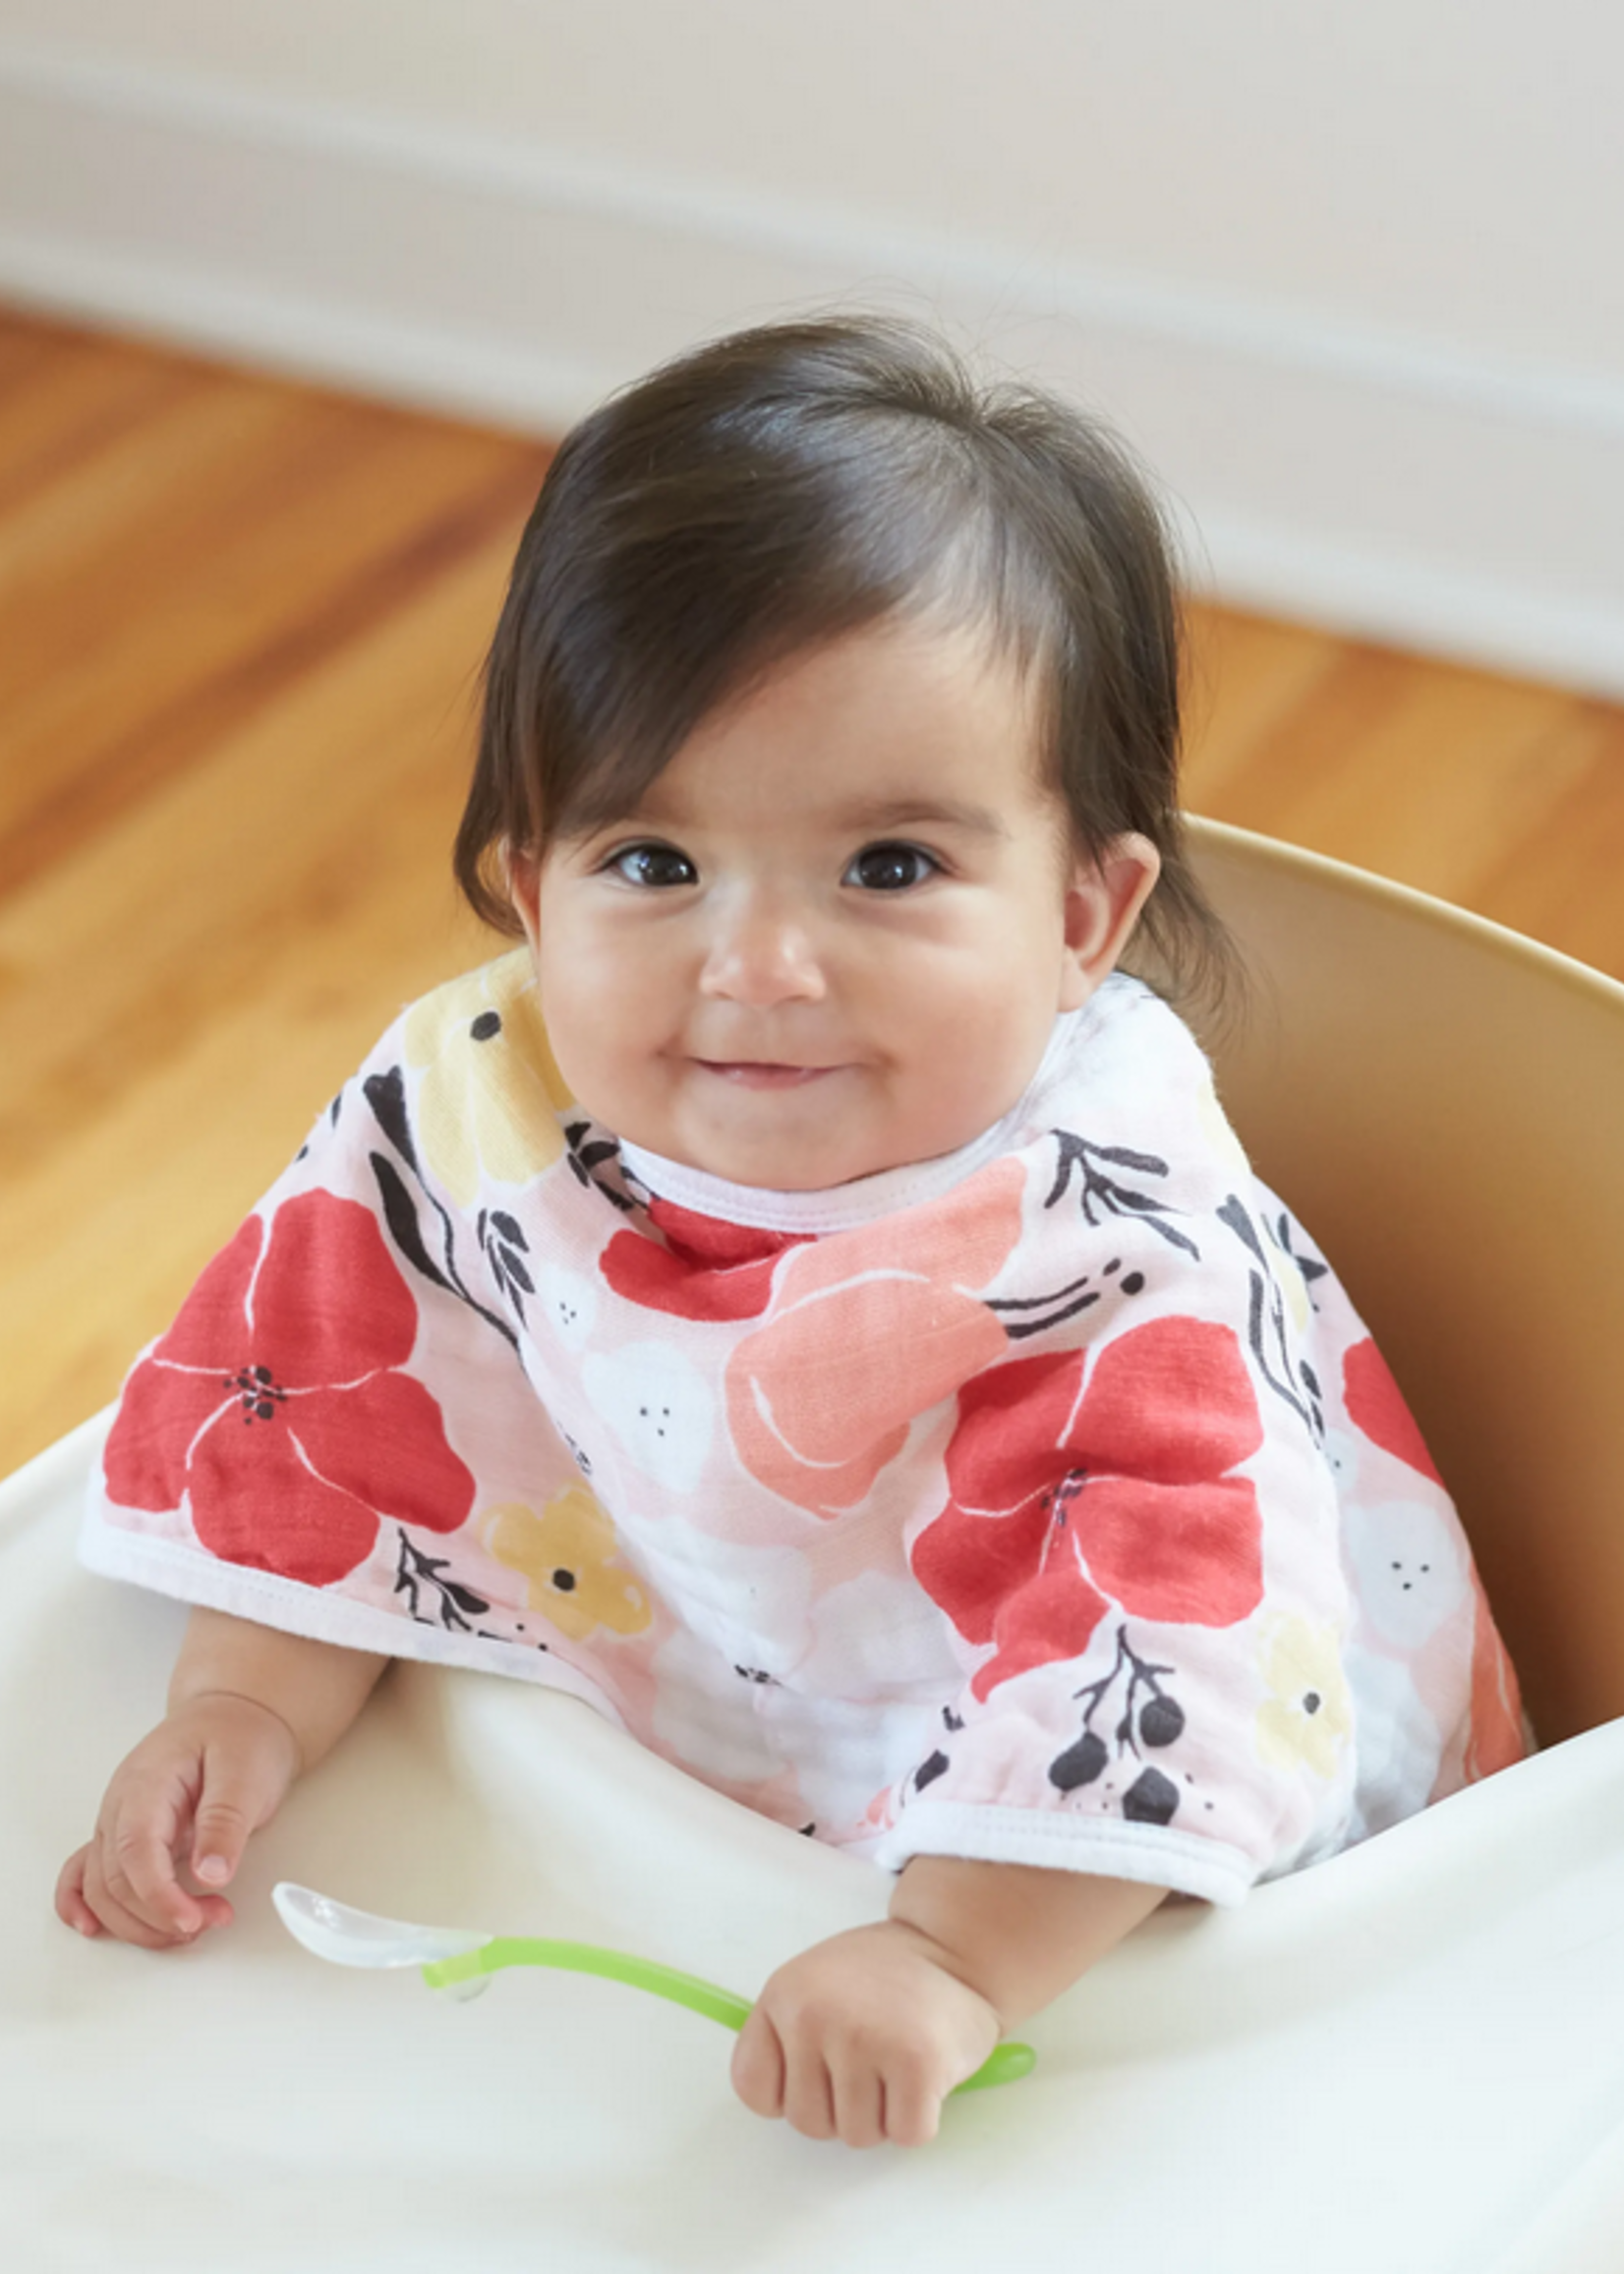 Elitaire Petite Picked For You 2-Pack Burpy Bibs